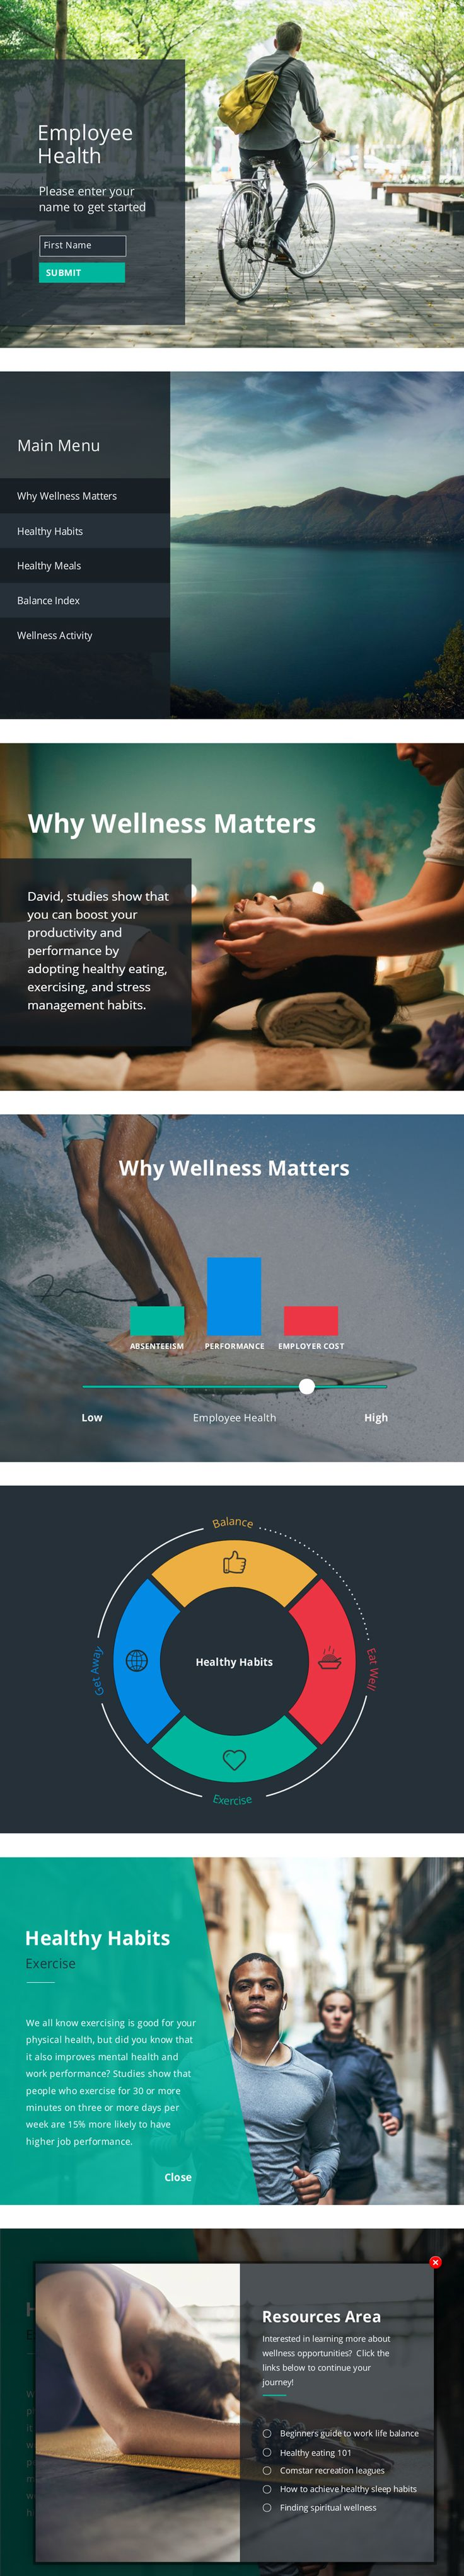 Comstar Employee Wellness - Articulate Storyline 2 #Elearning Demo